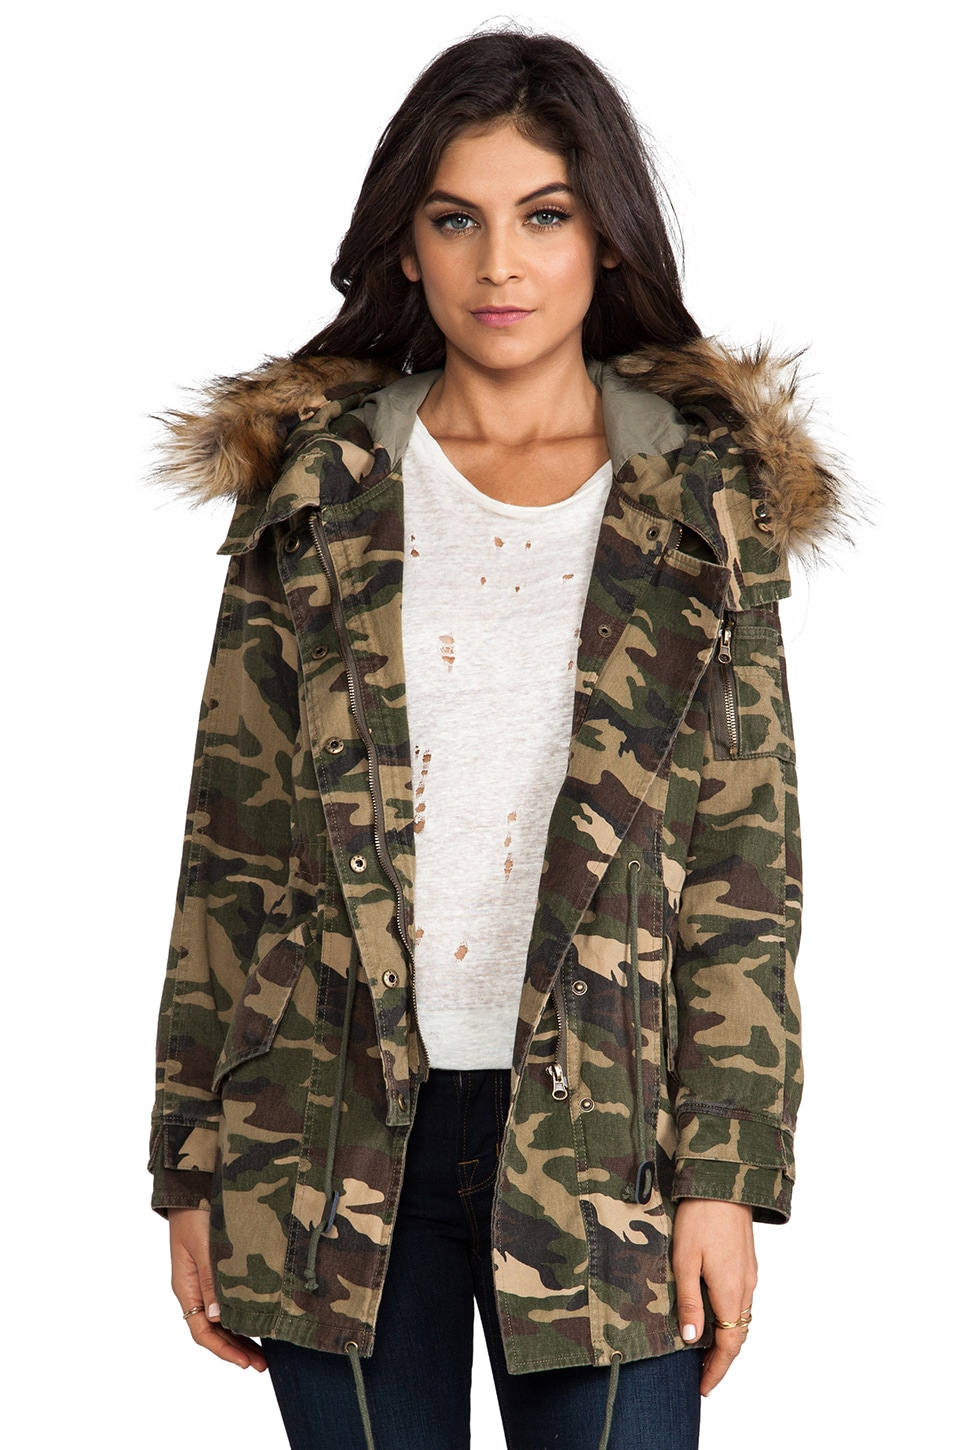 Capulet Military Parka with Faux Fur Trim in Camouflage